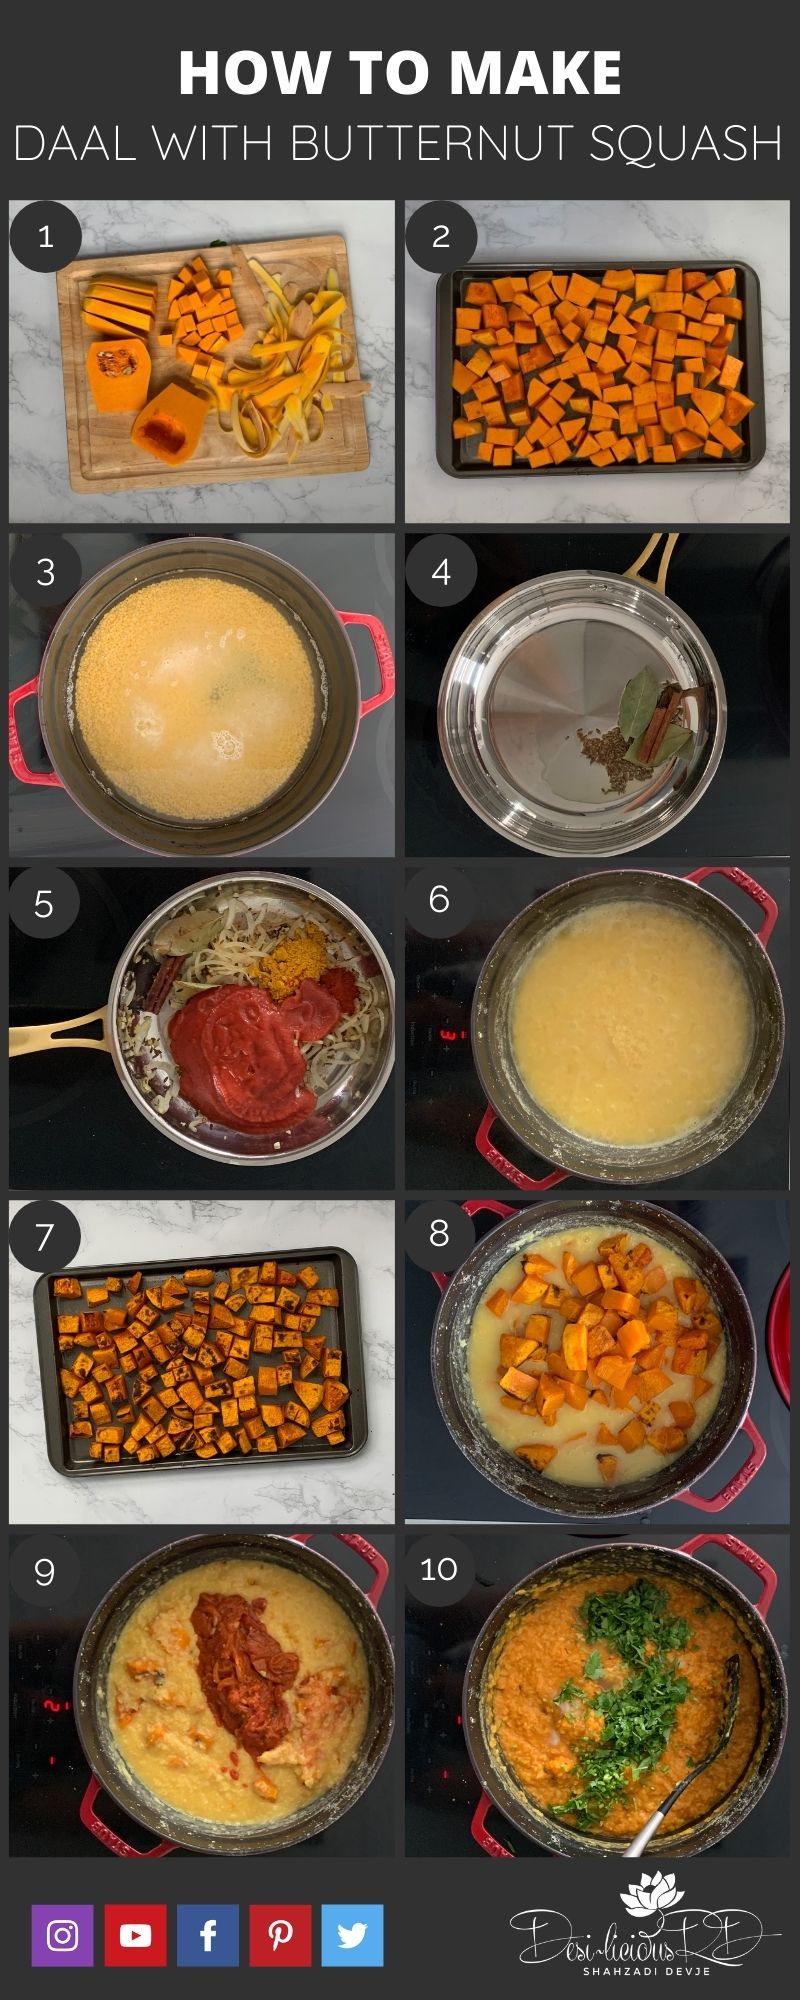 step by step preparation shots of how to make daal (aka yellow mung daal)